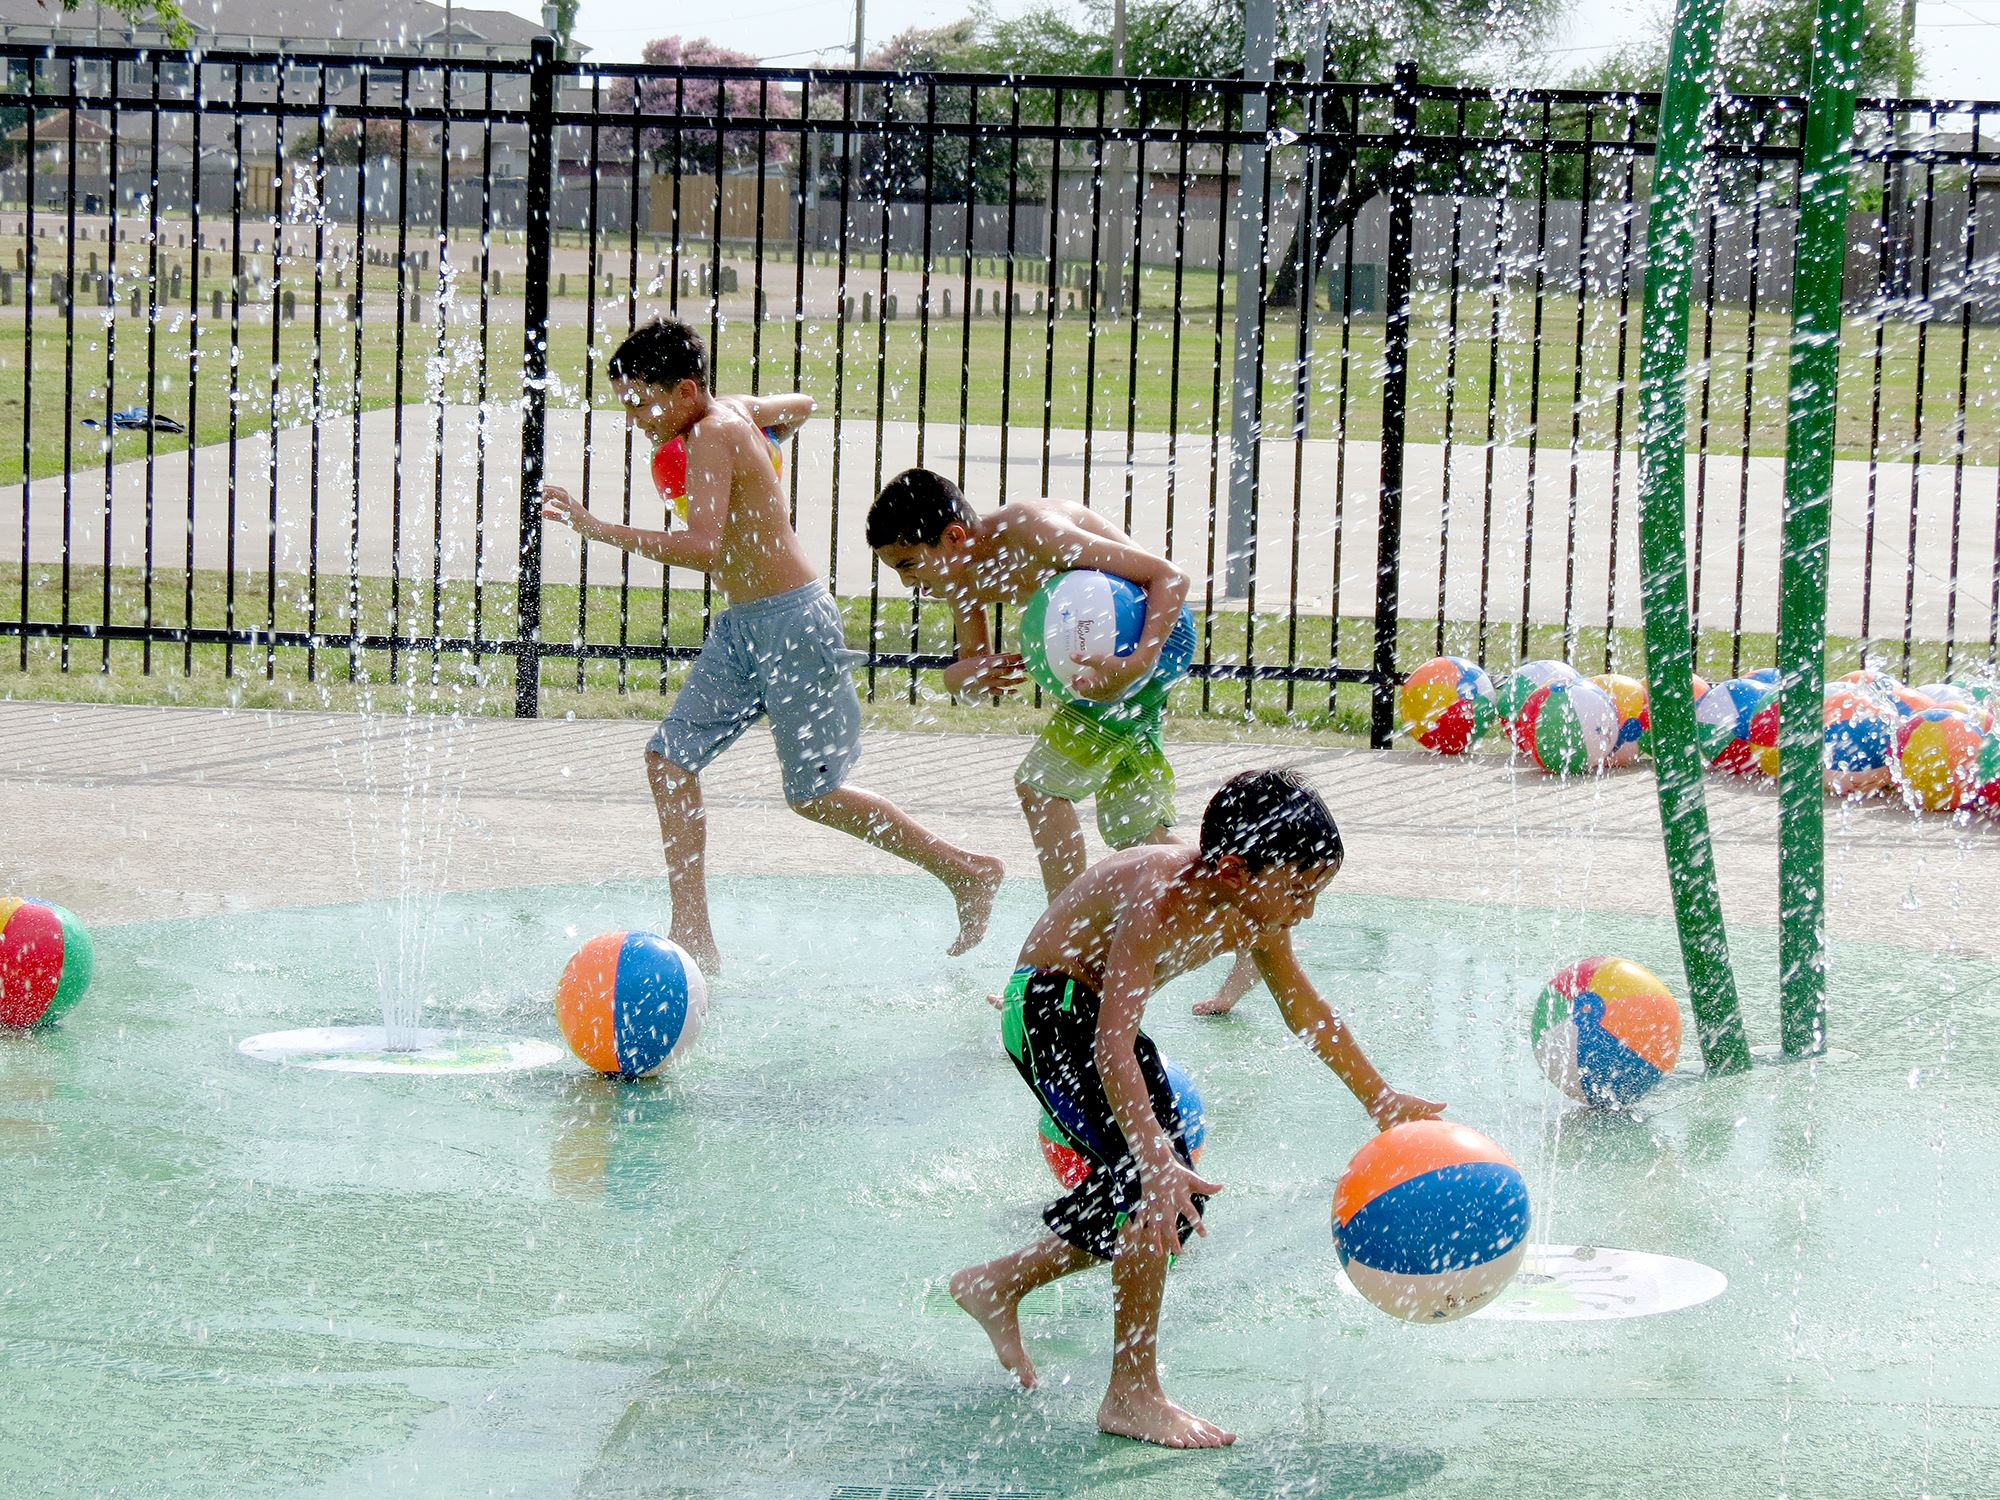 Children play at the Ethel Lee Tracy Park Splash Pad.